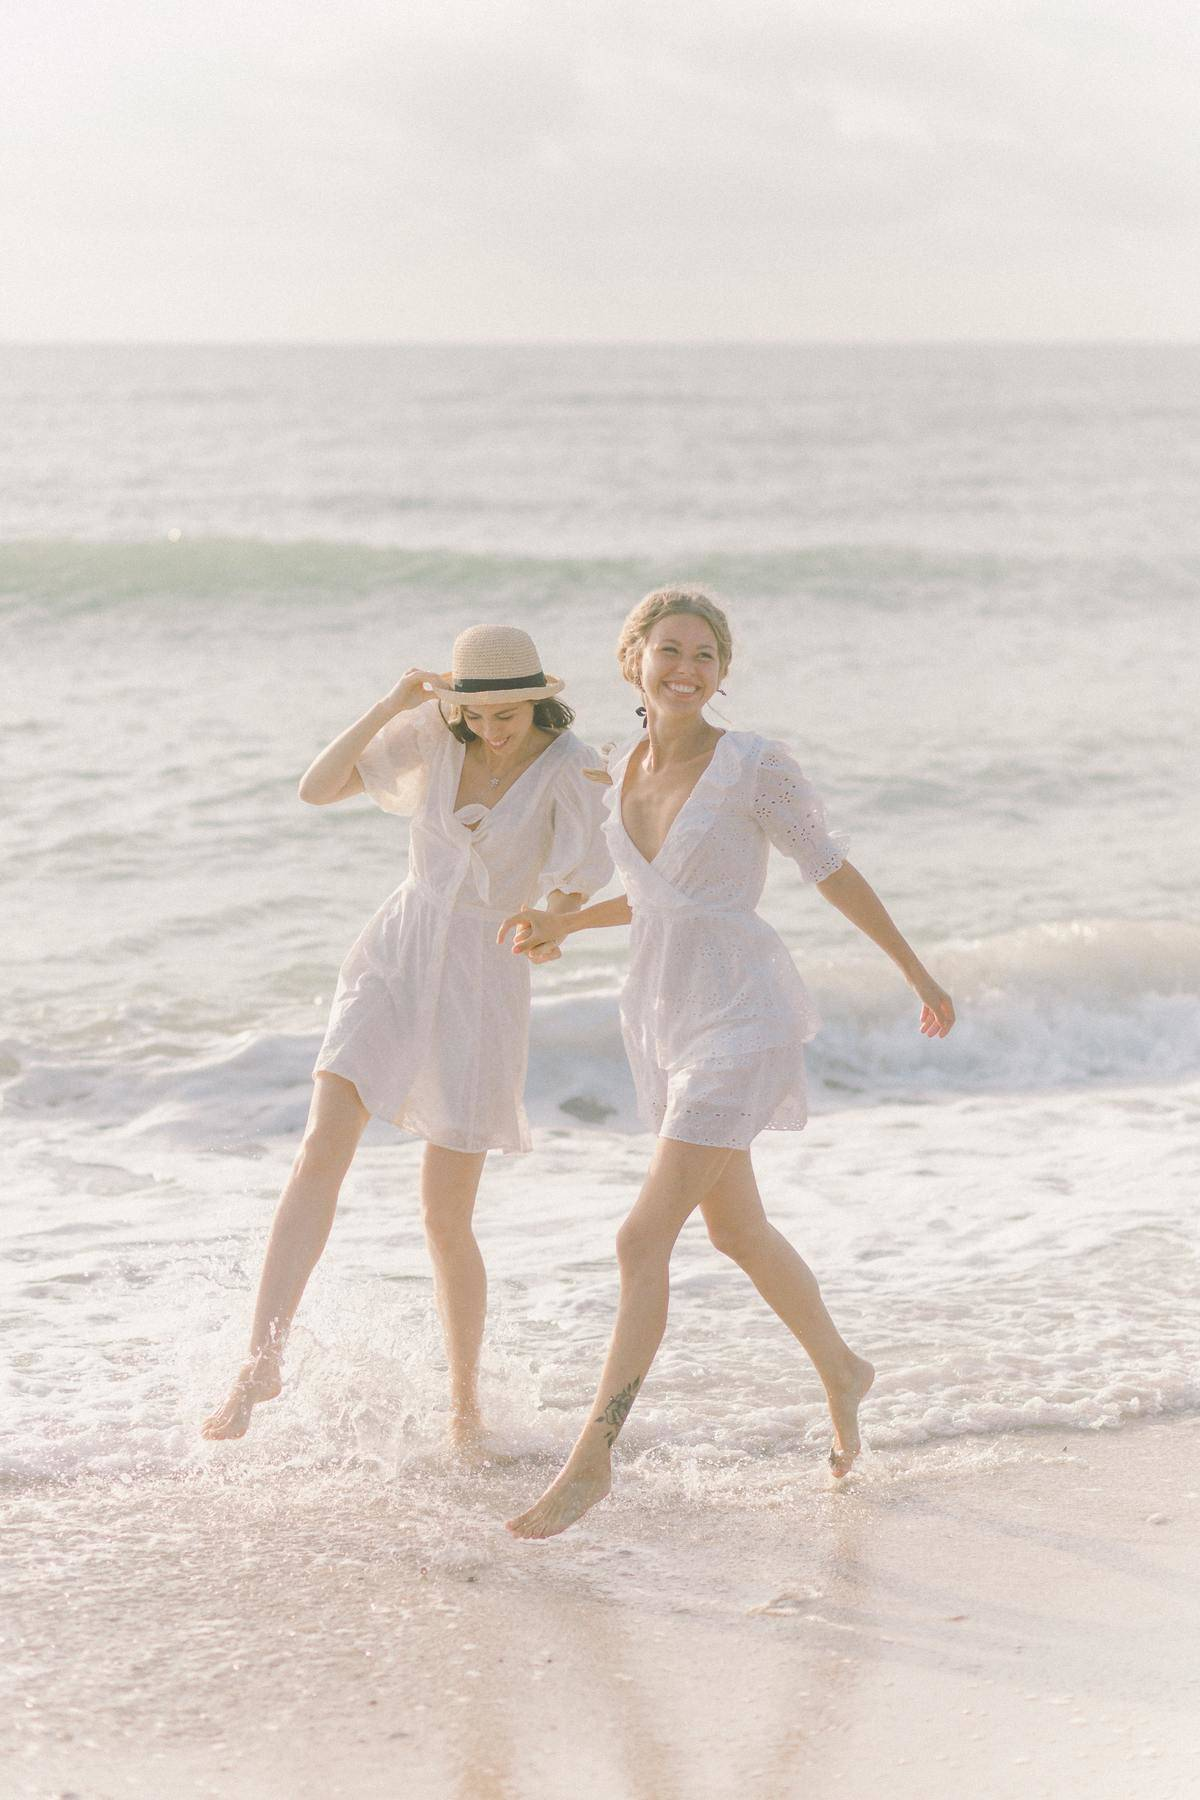 Two women in white dresses walk down the beach and hold hands